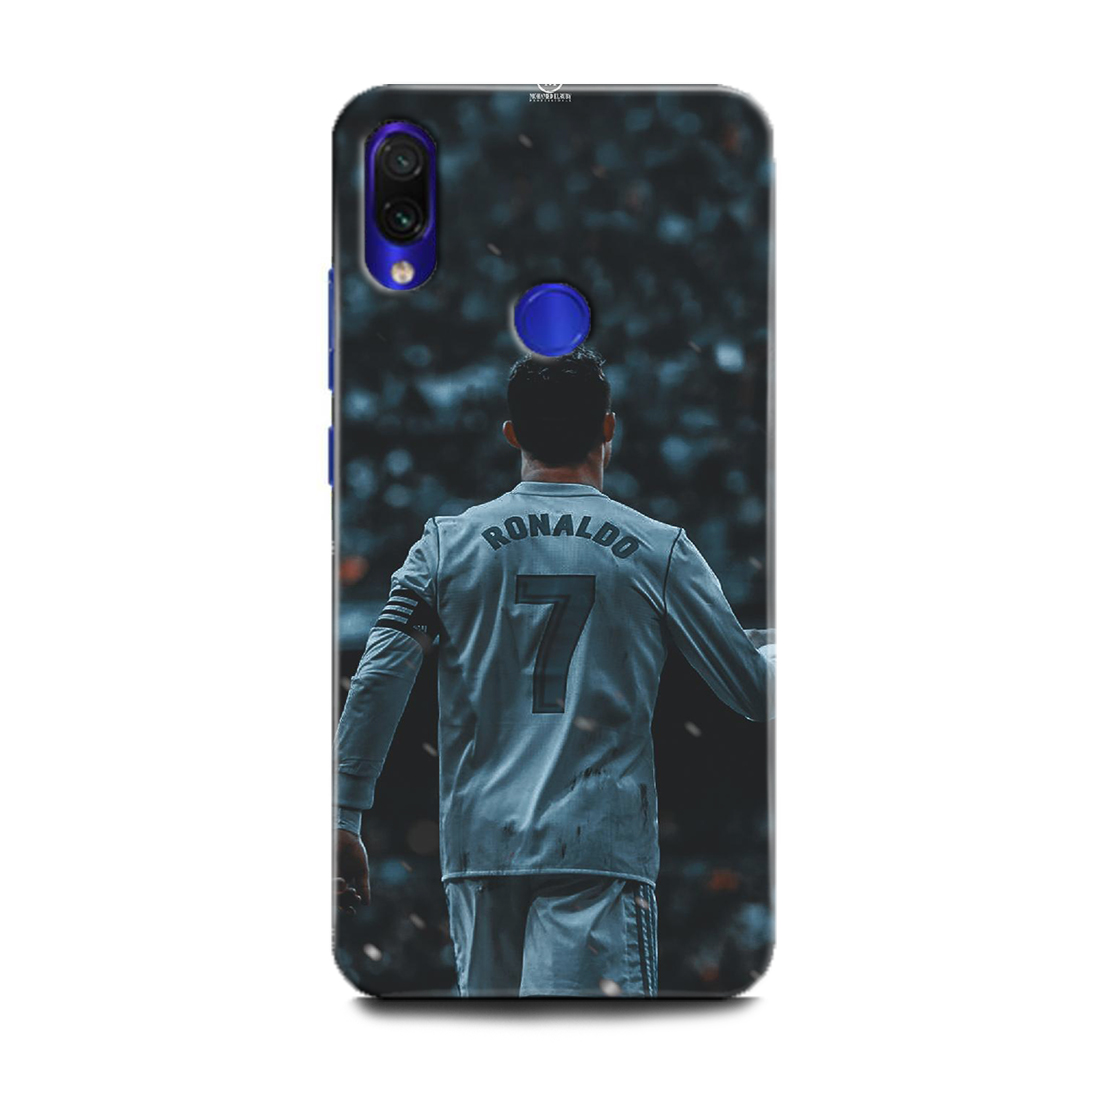 INDICRAFT Mobile Back Cover For Mi Redmi Y3 / Hard Case (Cristiano Ronaldo, Ronaldo 7, CR-7, Real Madrid, Football, Sports, M1810F6I) (AB-RedmiY3-0194)